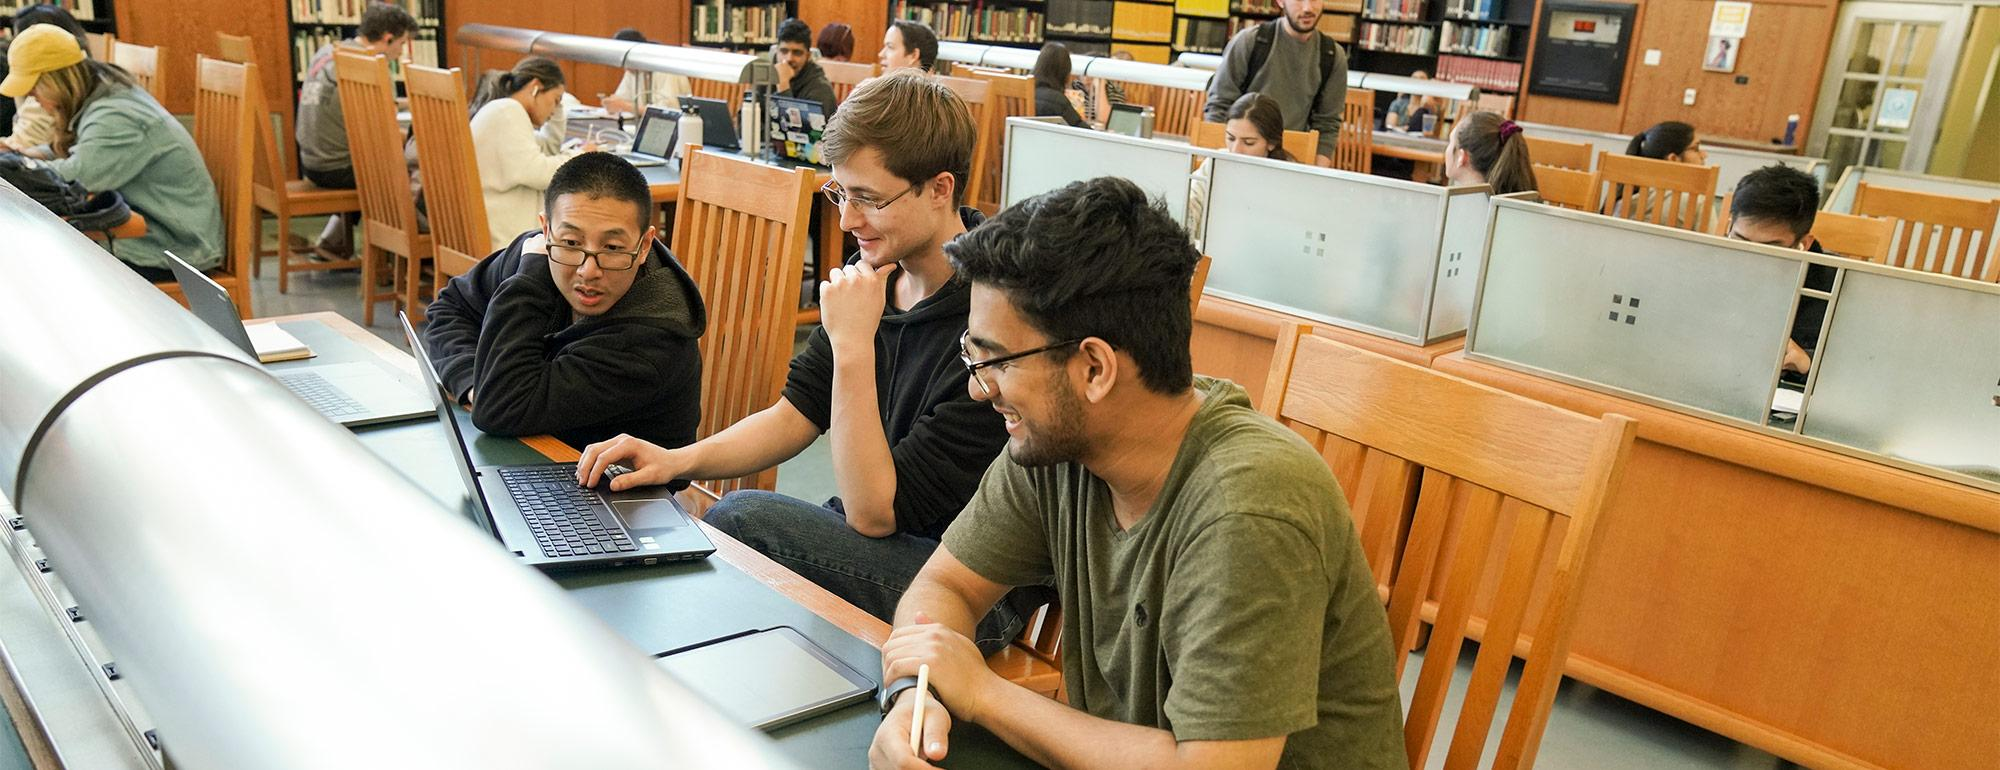 three students working on project together in the Shields Library.